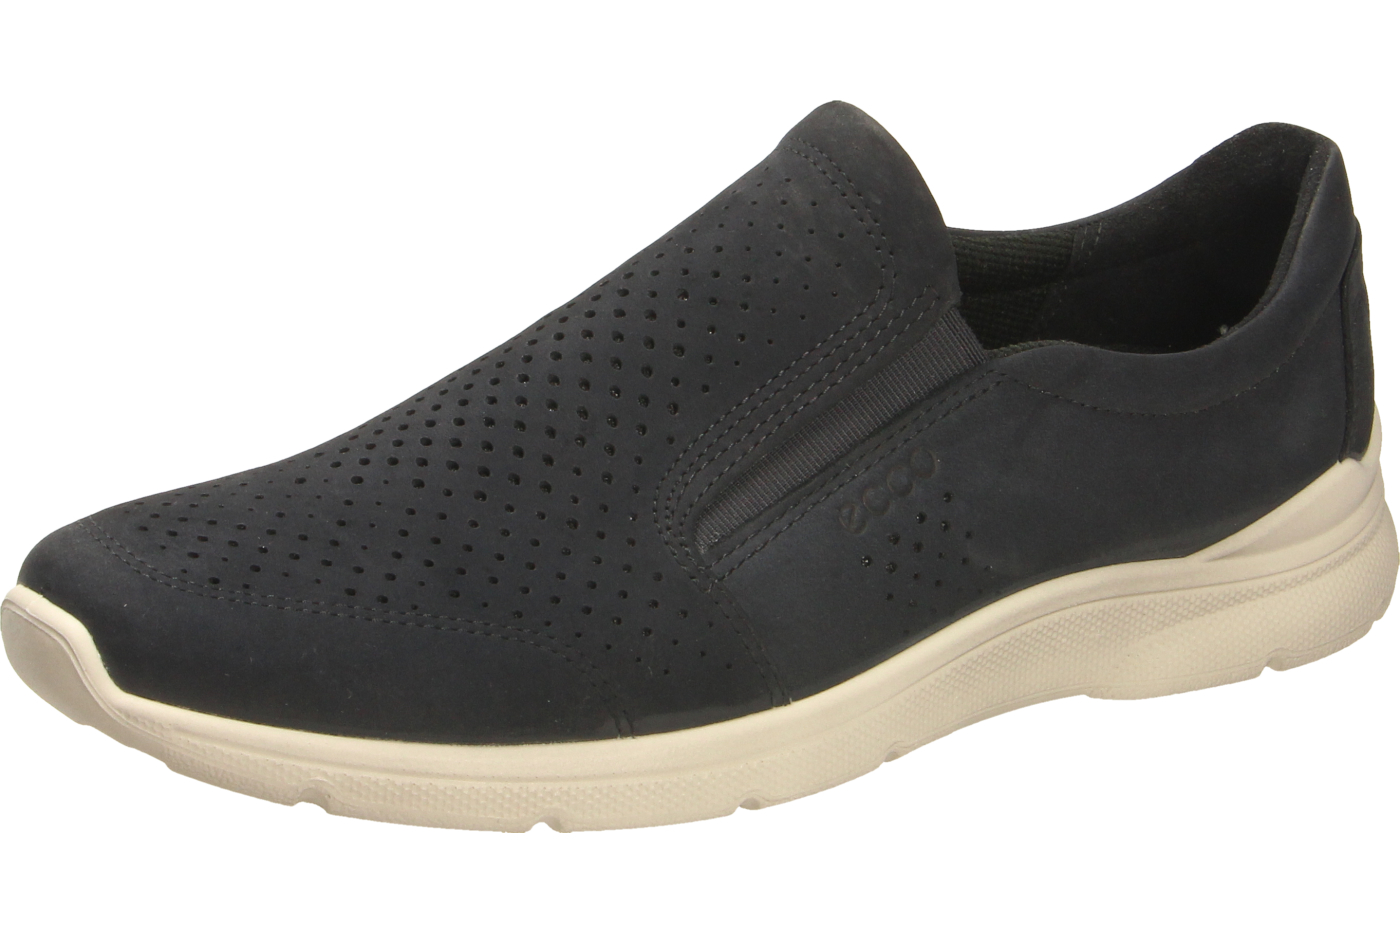 Ecco Irving Men Chaussures Hommes Loisirs Chaussures Basses Pantoufles Navy 511644-02058